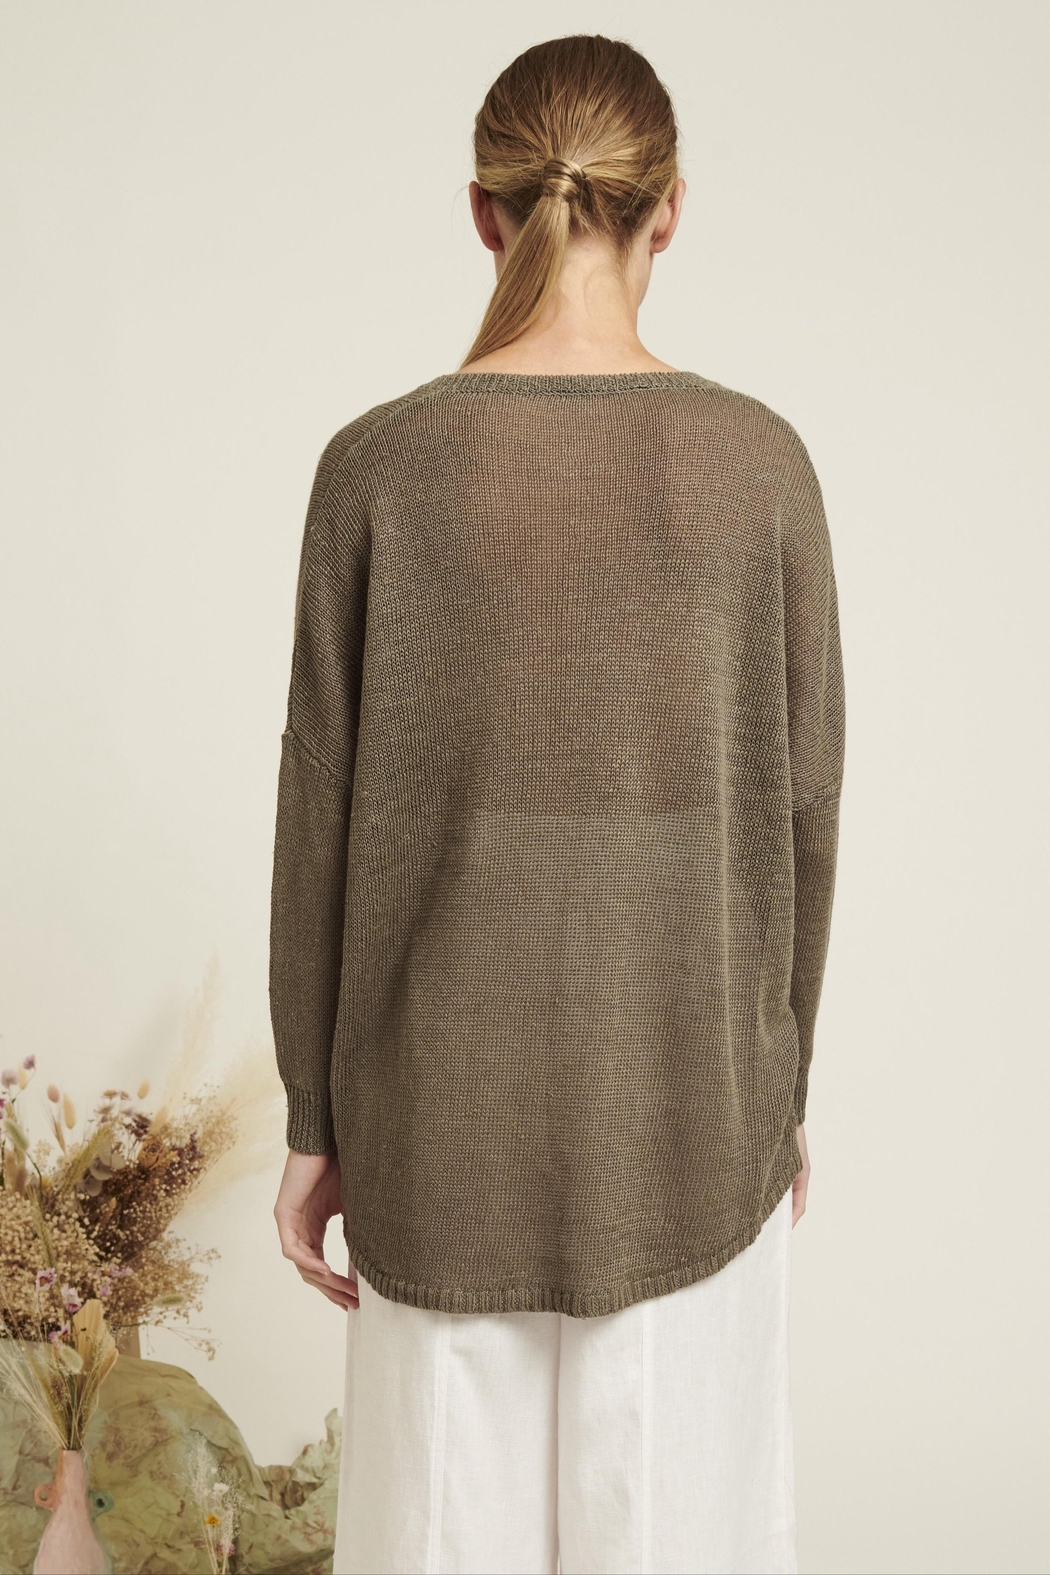 Naif Montreal Relaxed Linen Sweater - Side Cropped Image